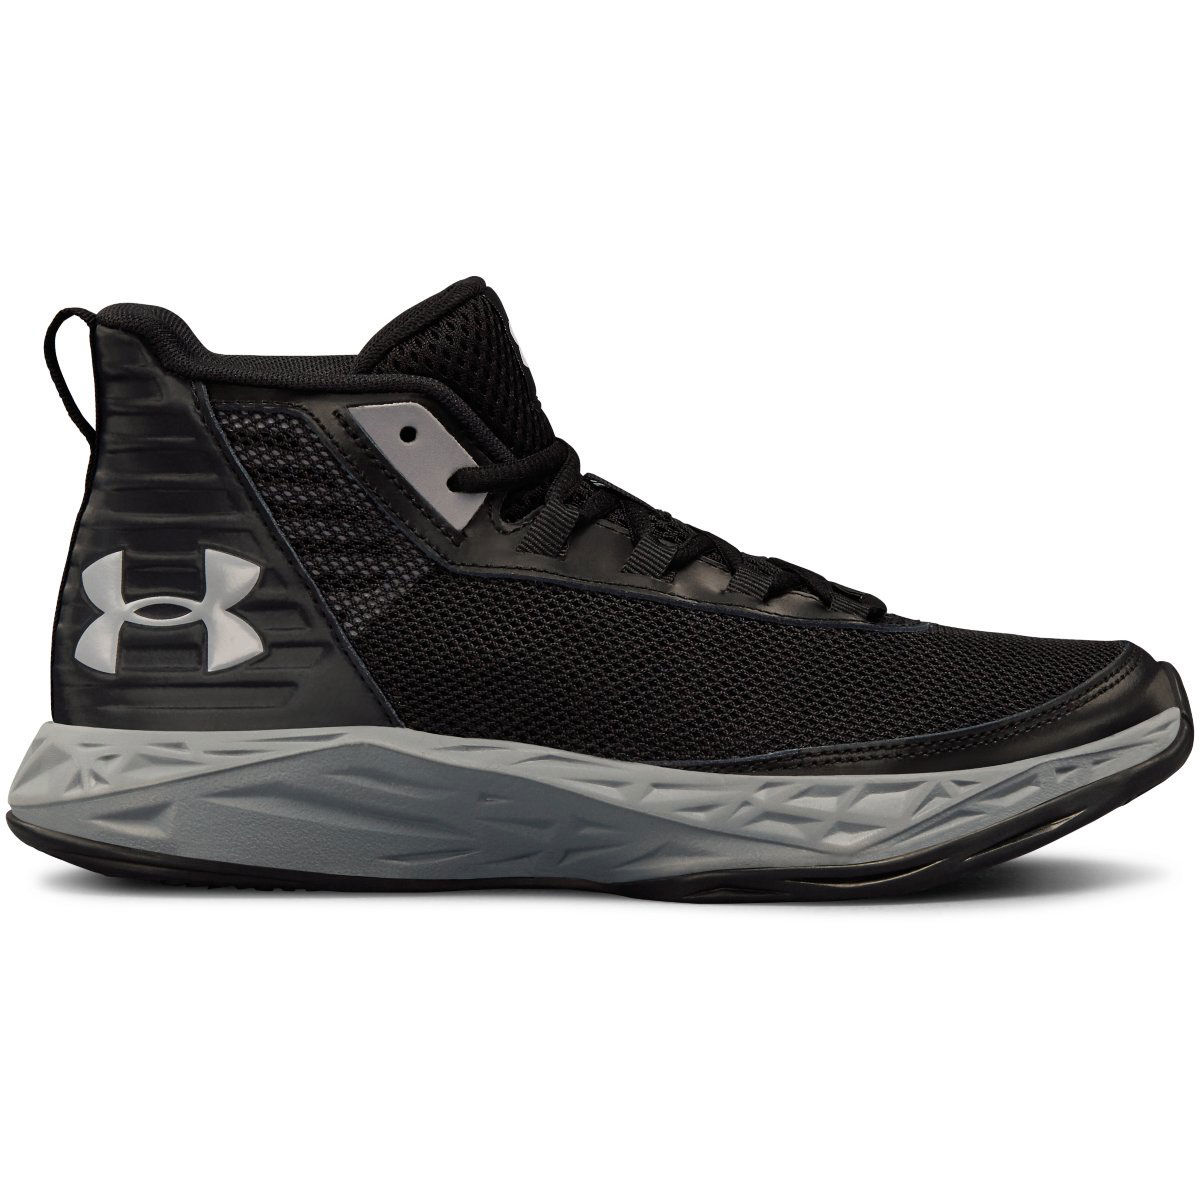 Under Armour Jet 2018 Big Kid Boys Basketball Shoe